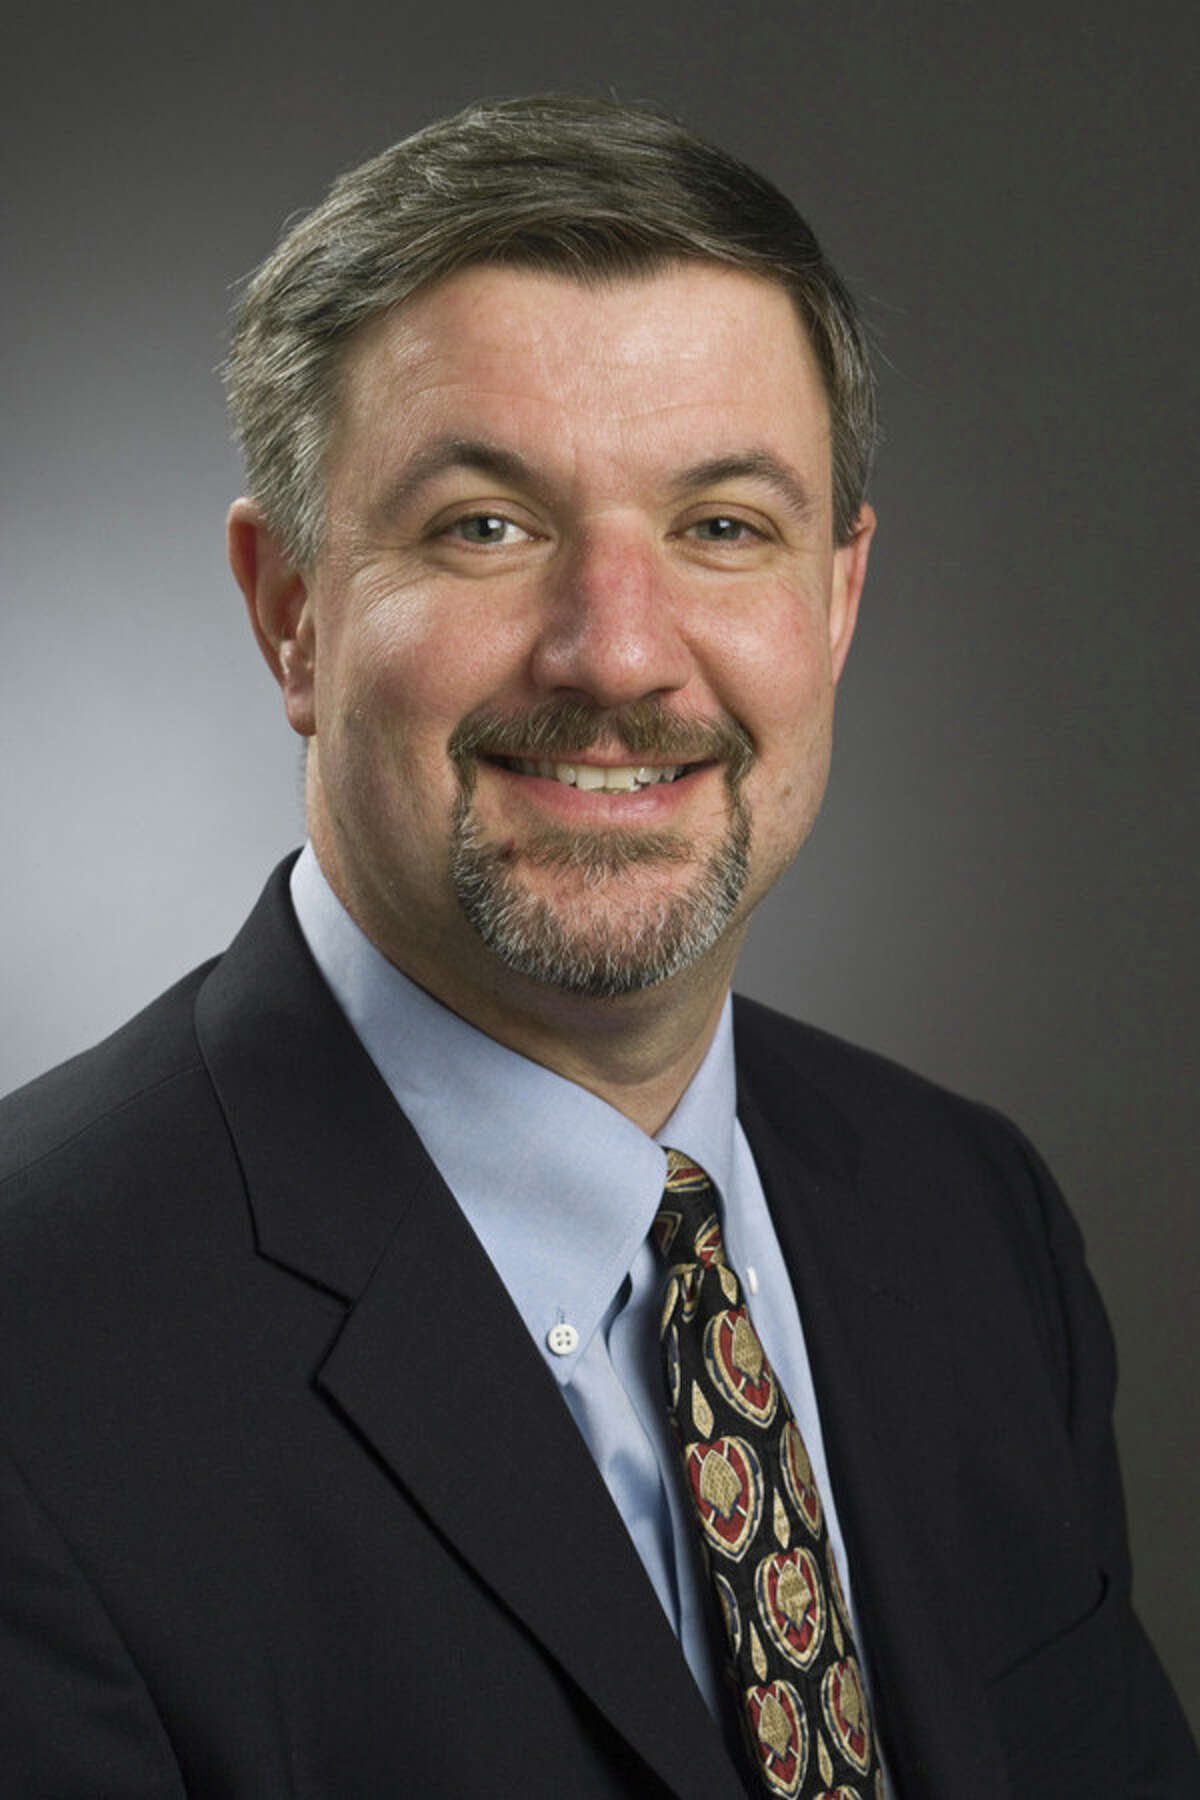 William C. Piper was recently named CEO of Waveny Care Network.